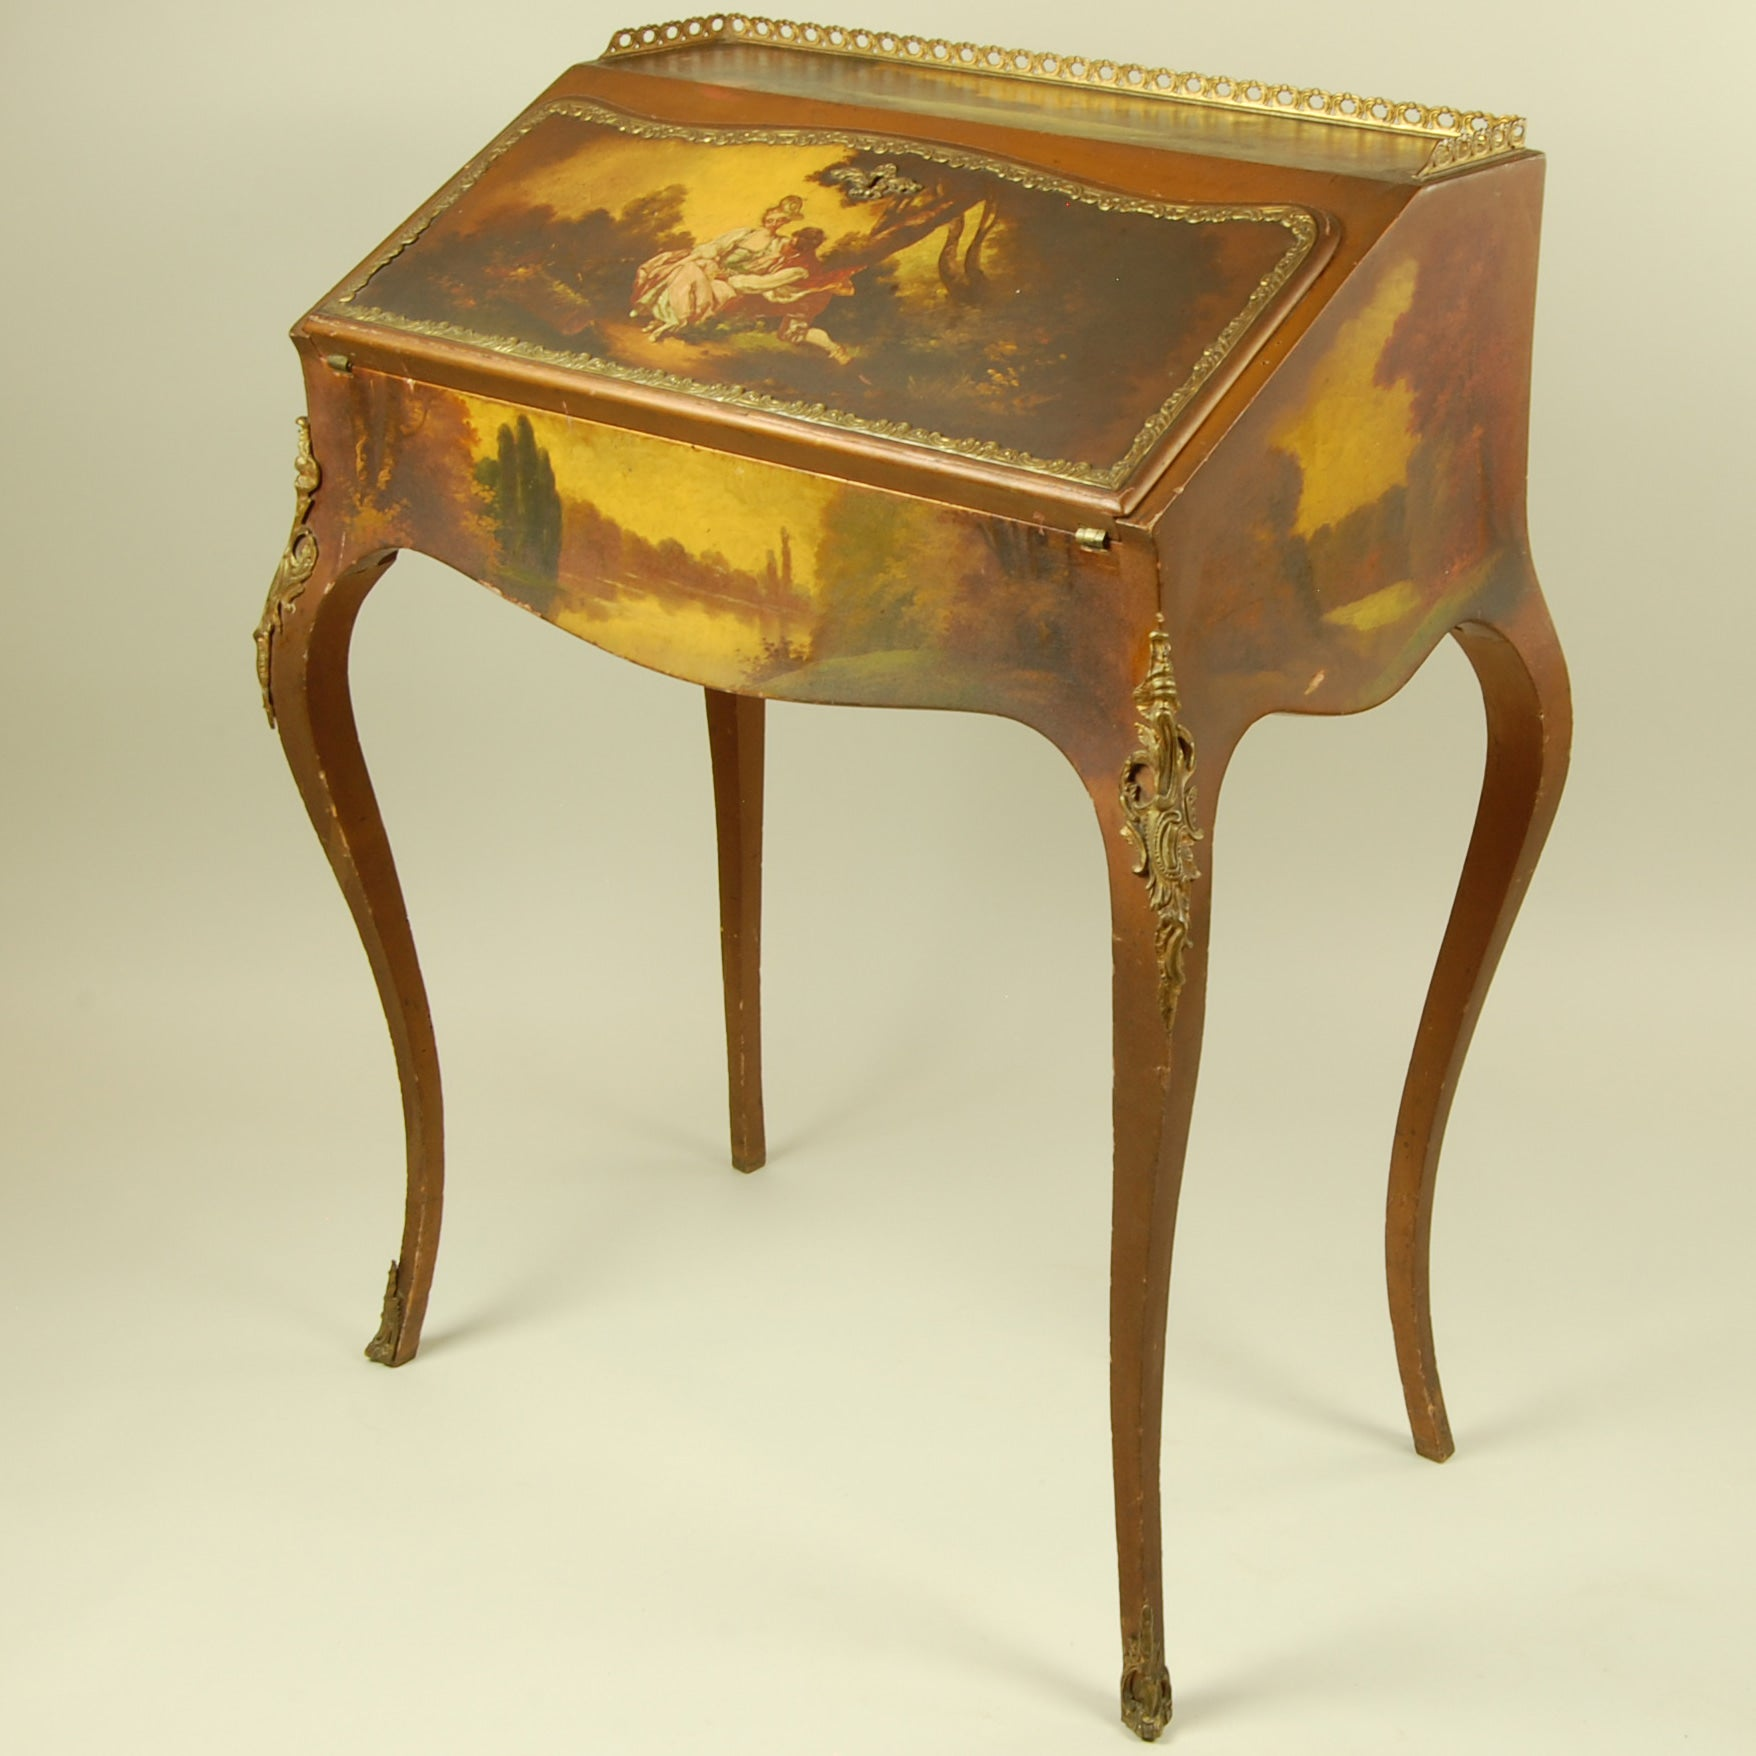 Brand-new Antique Writing Desk with Painted Scene OO23